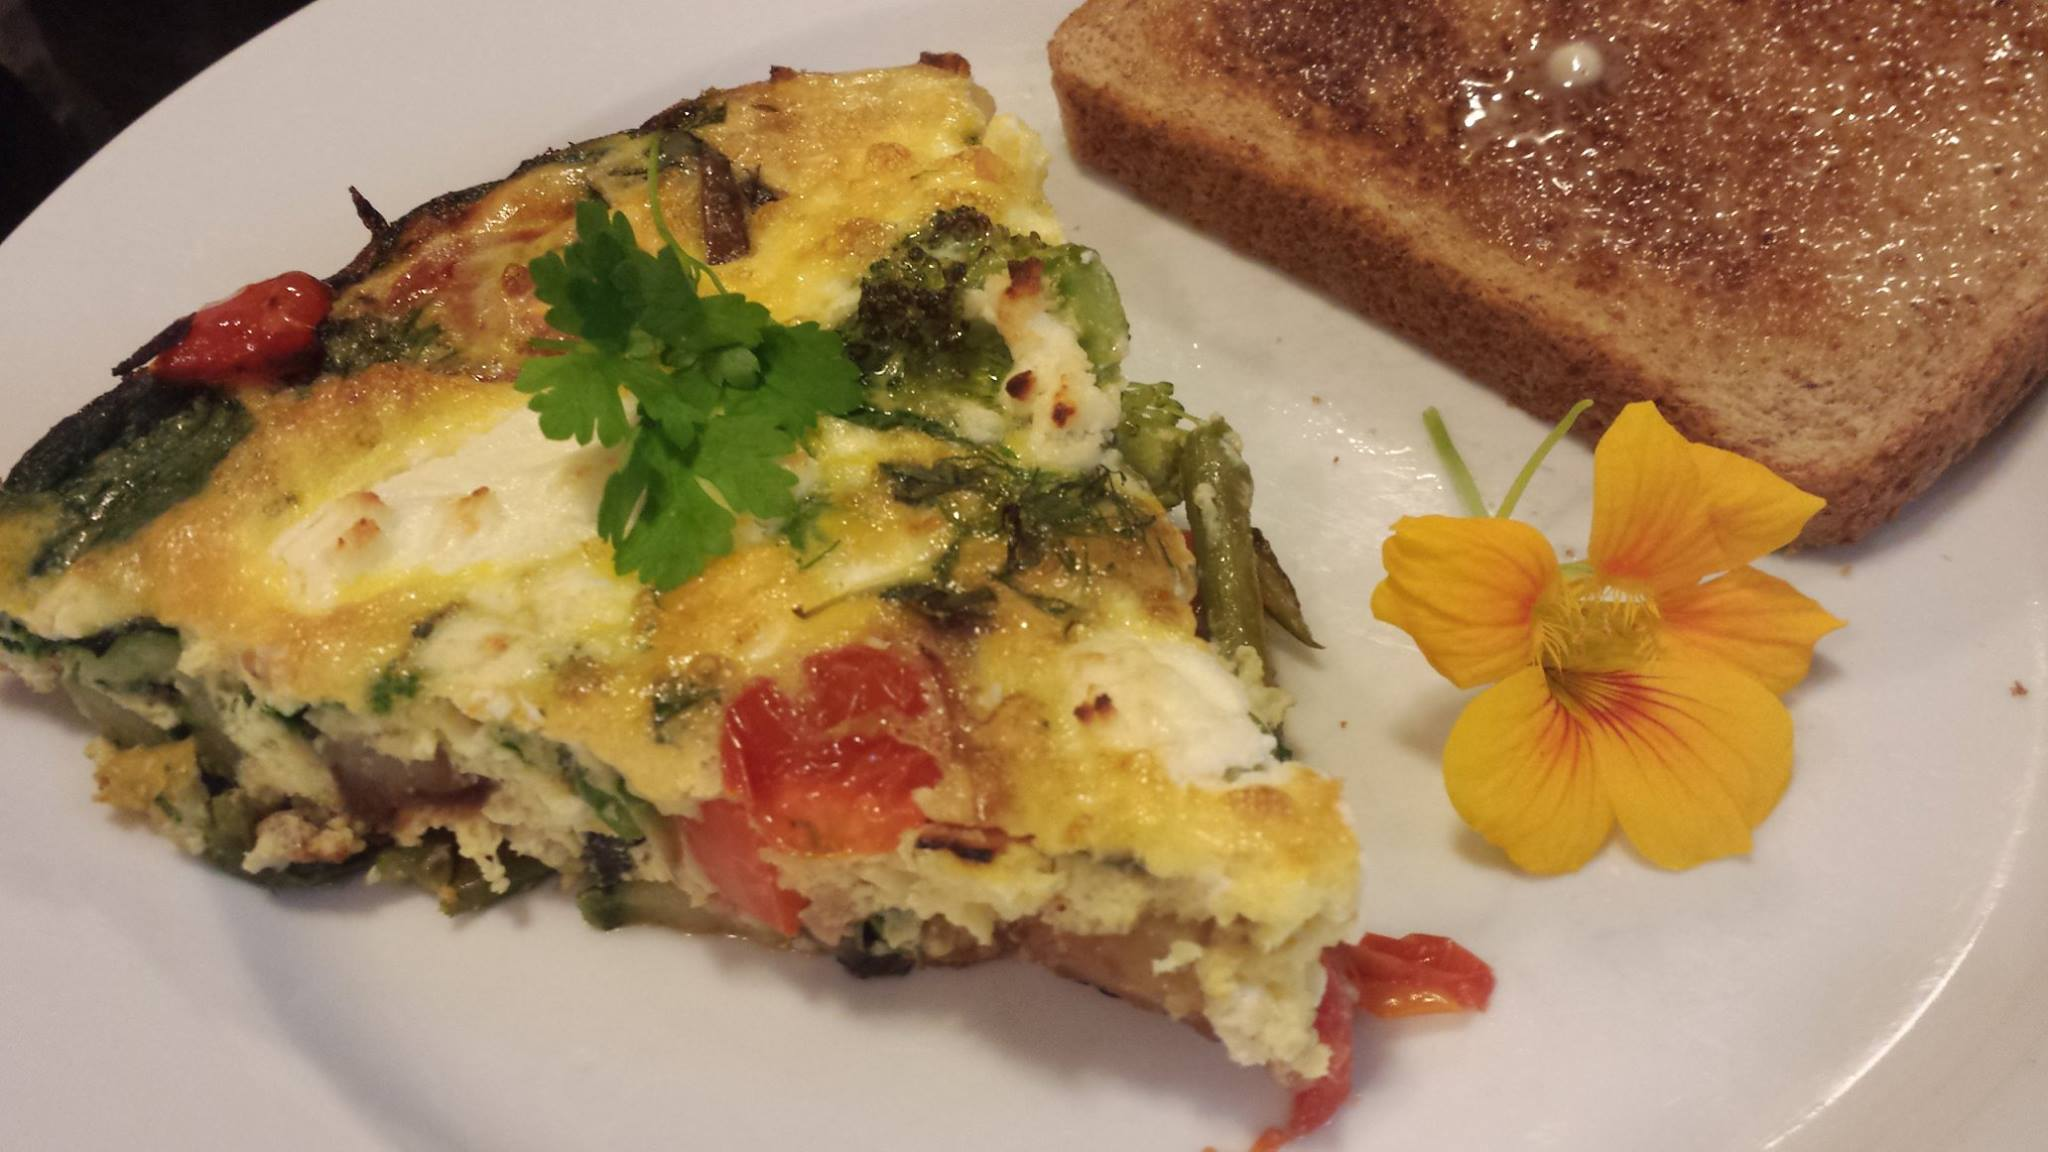 Easy Vegetable Frittata - A Food Lover's Delight